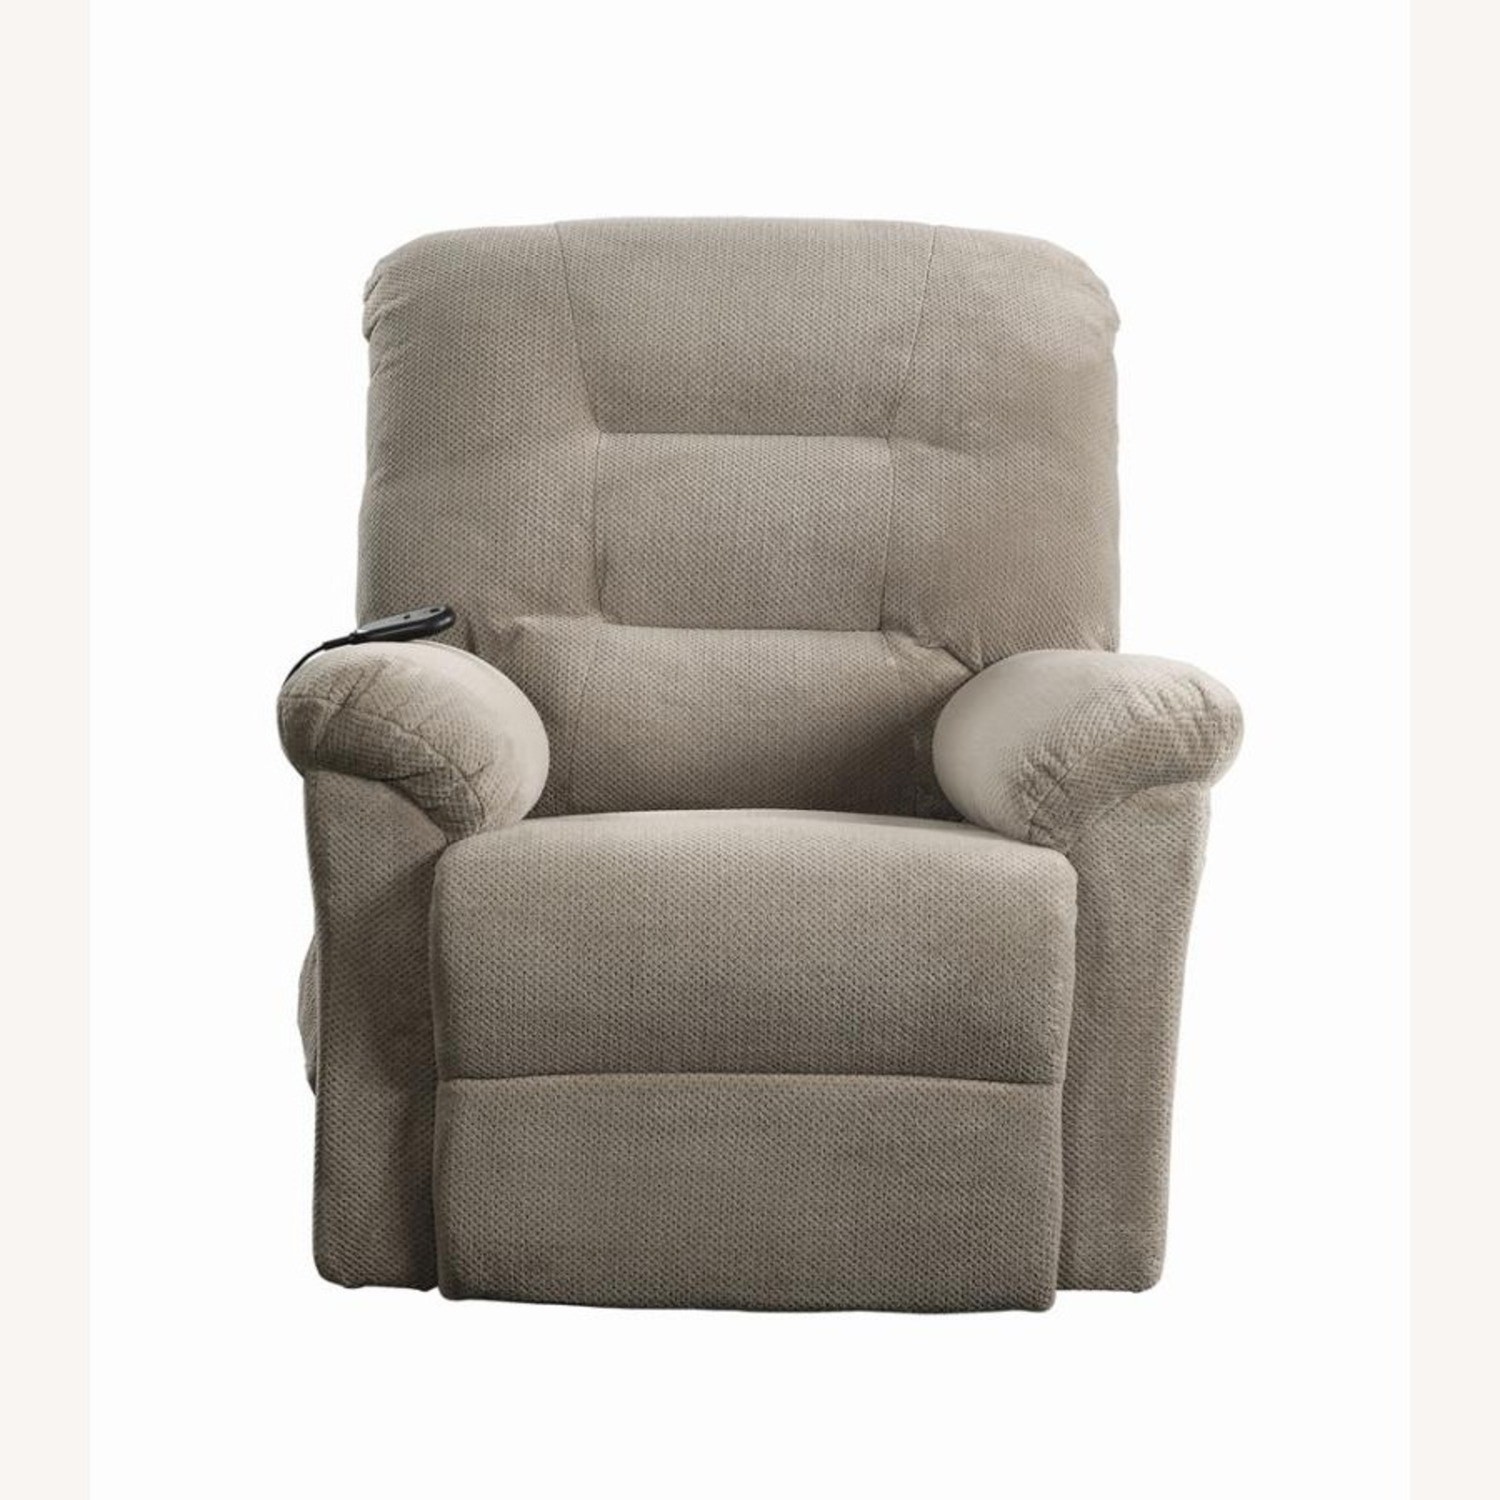 Power Lift Recliner In Beige Chenille Fabric - image-3